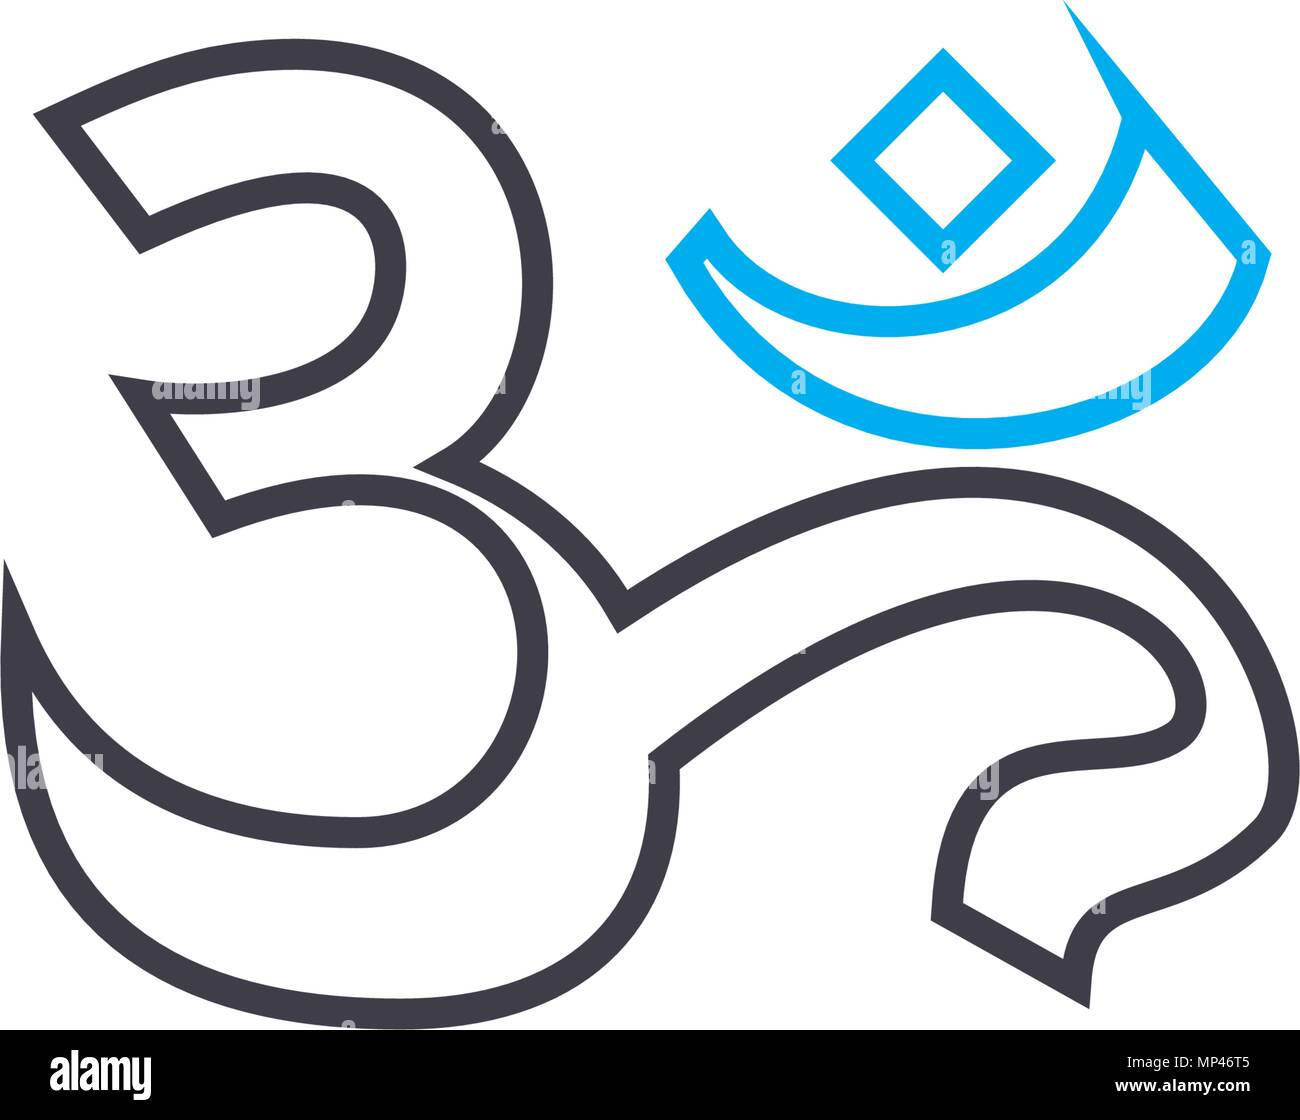 National writing linear icon concept. National writing line vector sign, symbol, illustration. - Stock Image